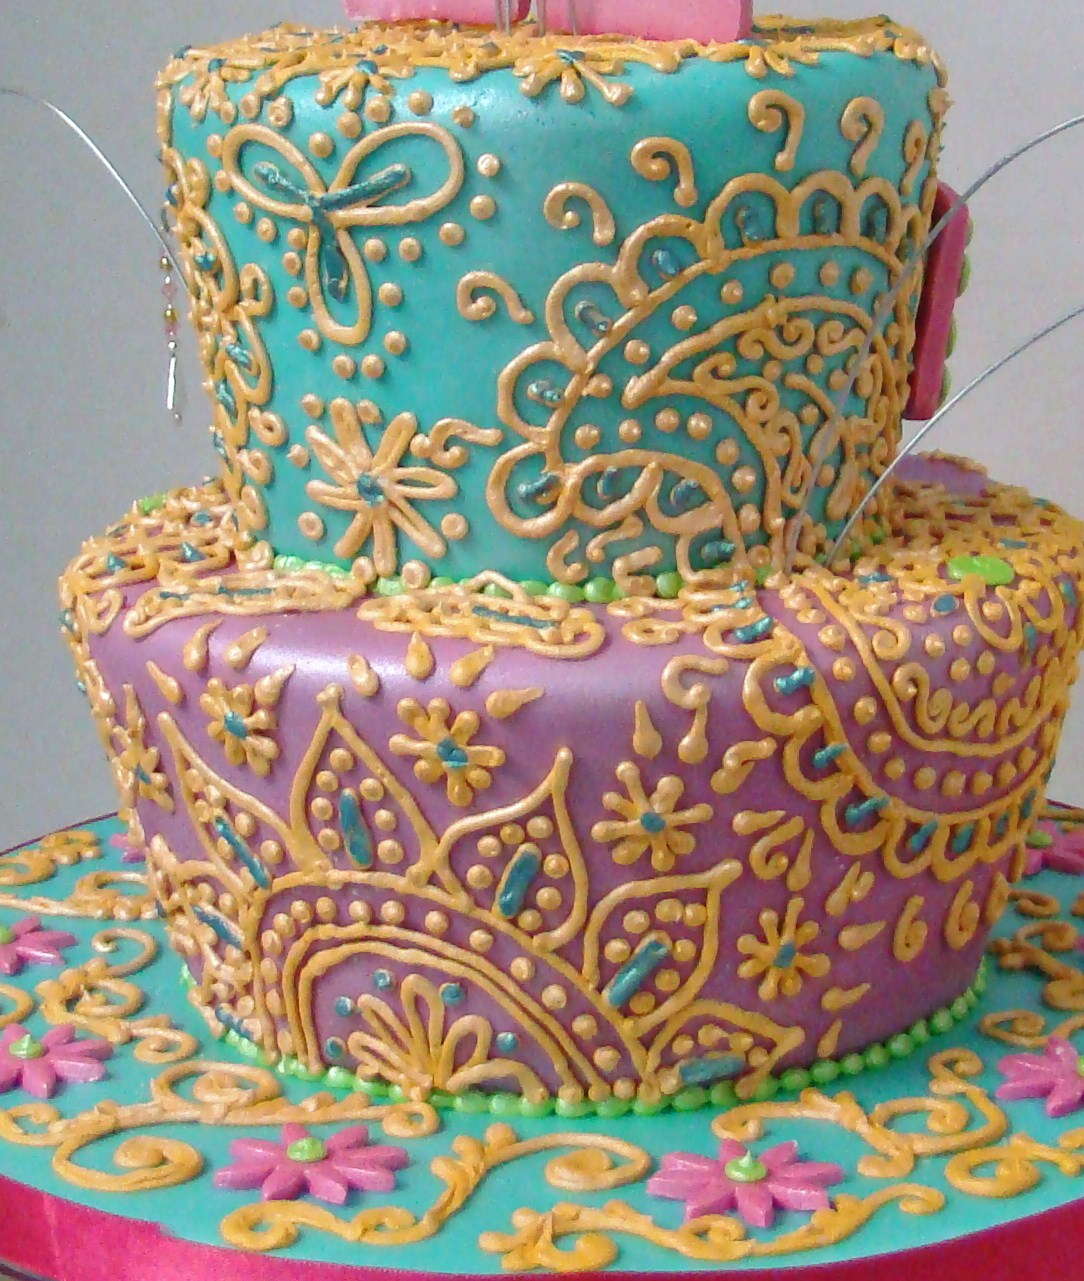 22nd Birthday Ideas In November: Sweet Cakes By Rebecca: Rock The Kasbah